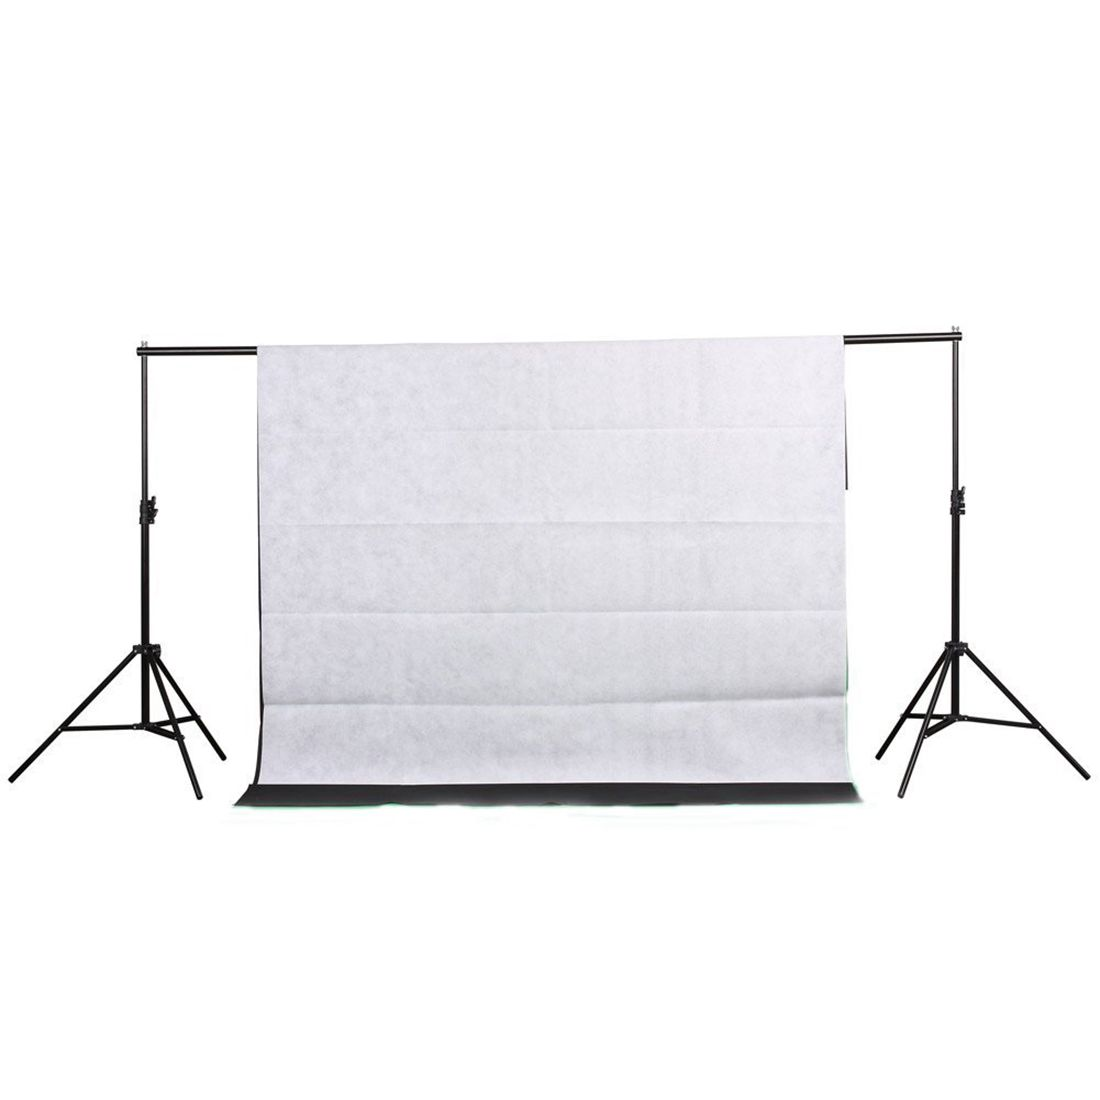 Top Deals Studio Photography Backdrop Kit Backdrop Support Stand Kit, Includes 2x Backdrop Screen(Black & White), Background S